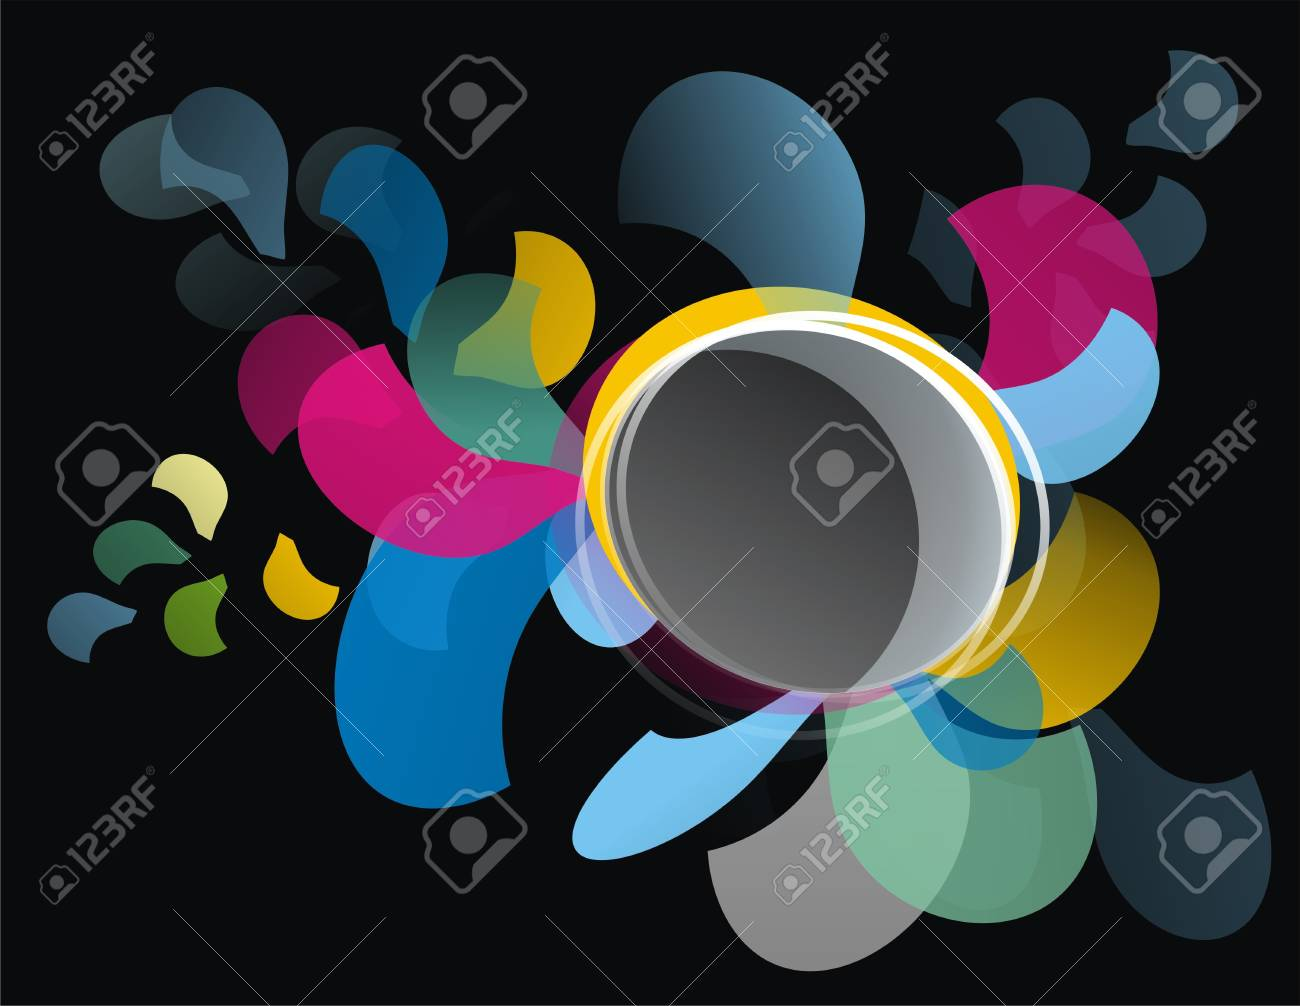 Abstract background on black Stock Photo - 13784885